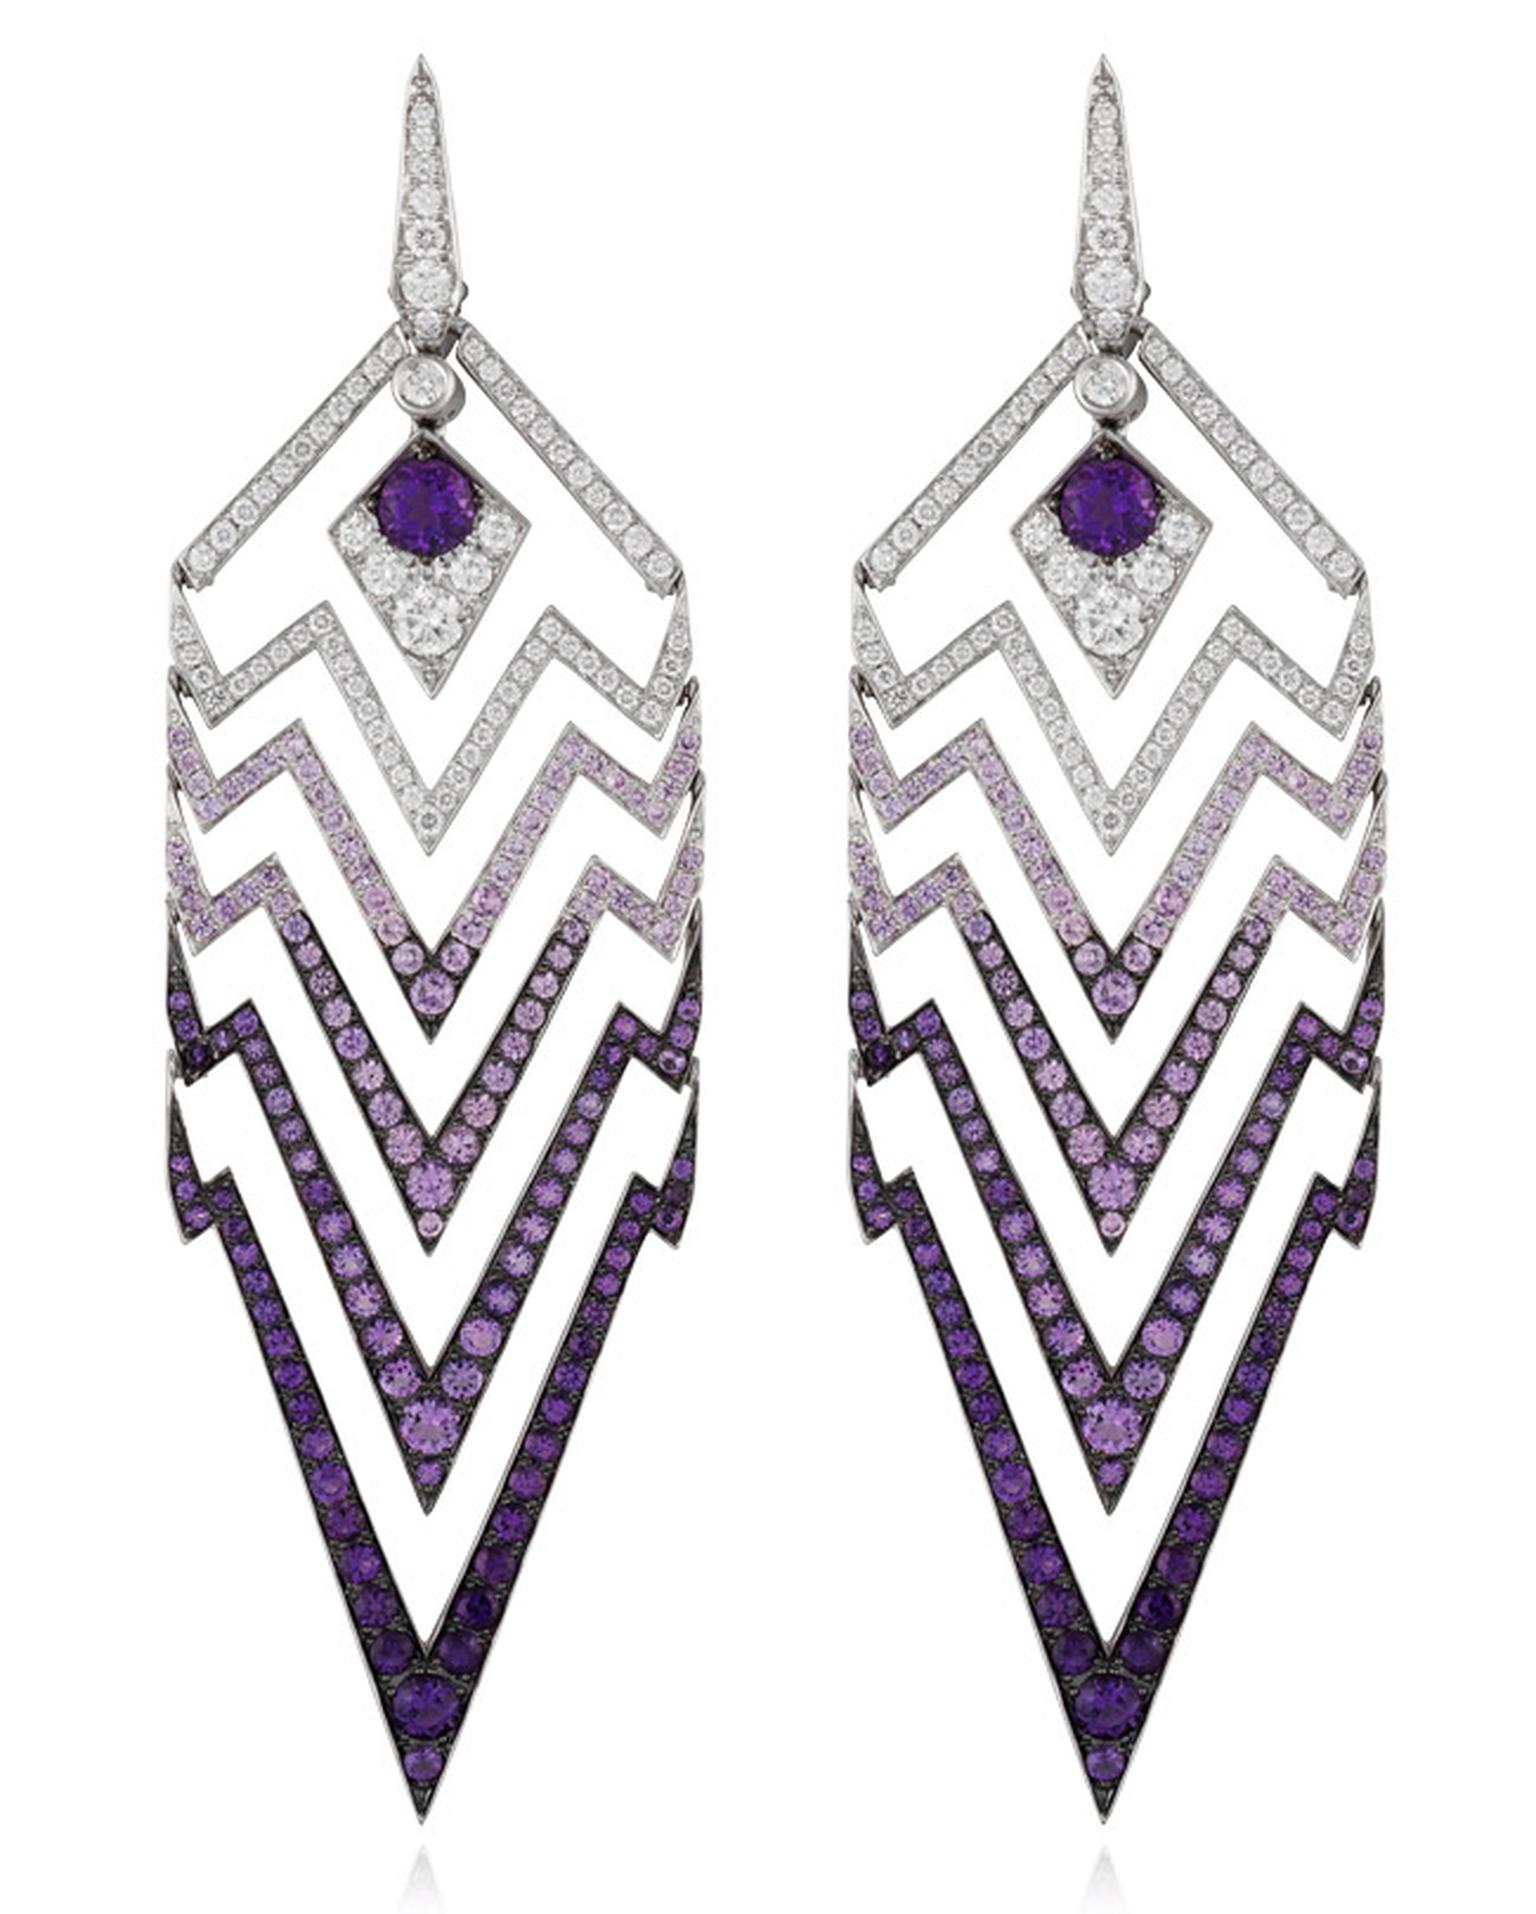 Stephen Webster Stardust Earrings main